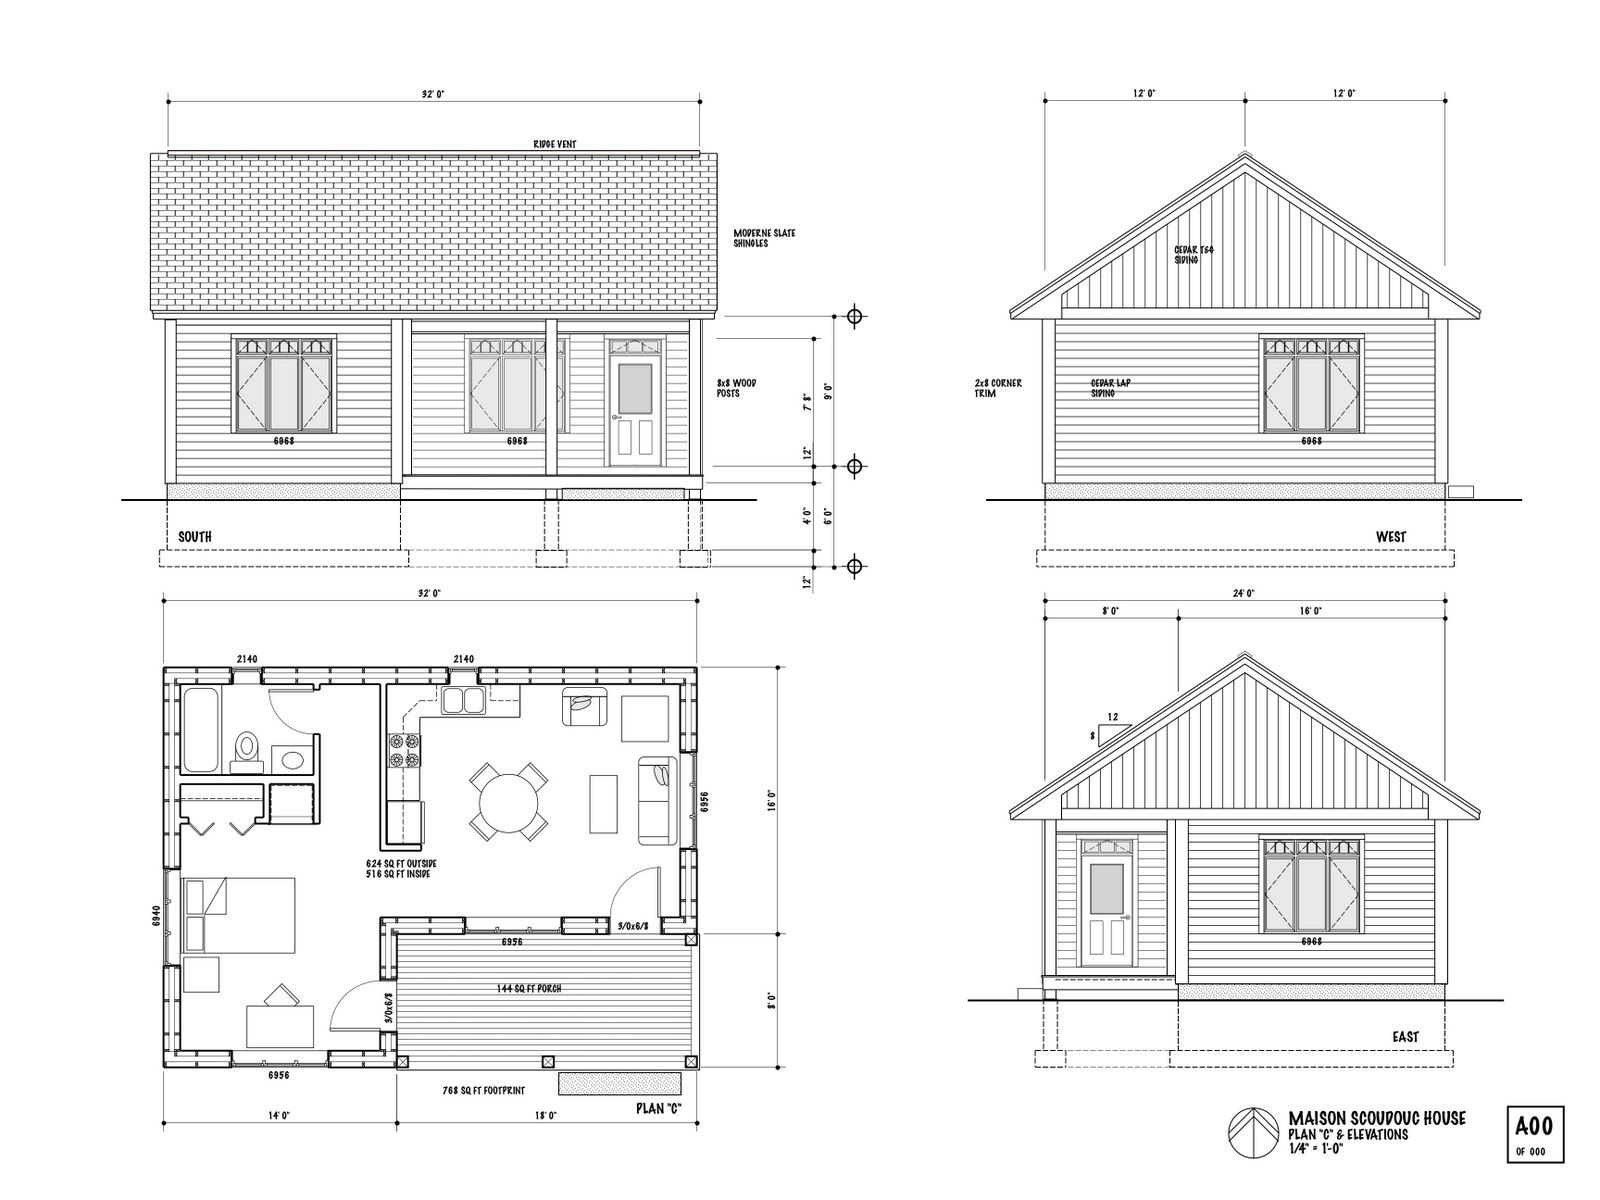 one room house layout |  the maison scoudouc house plan c is